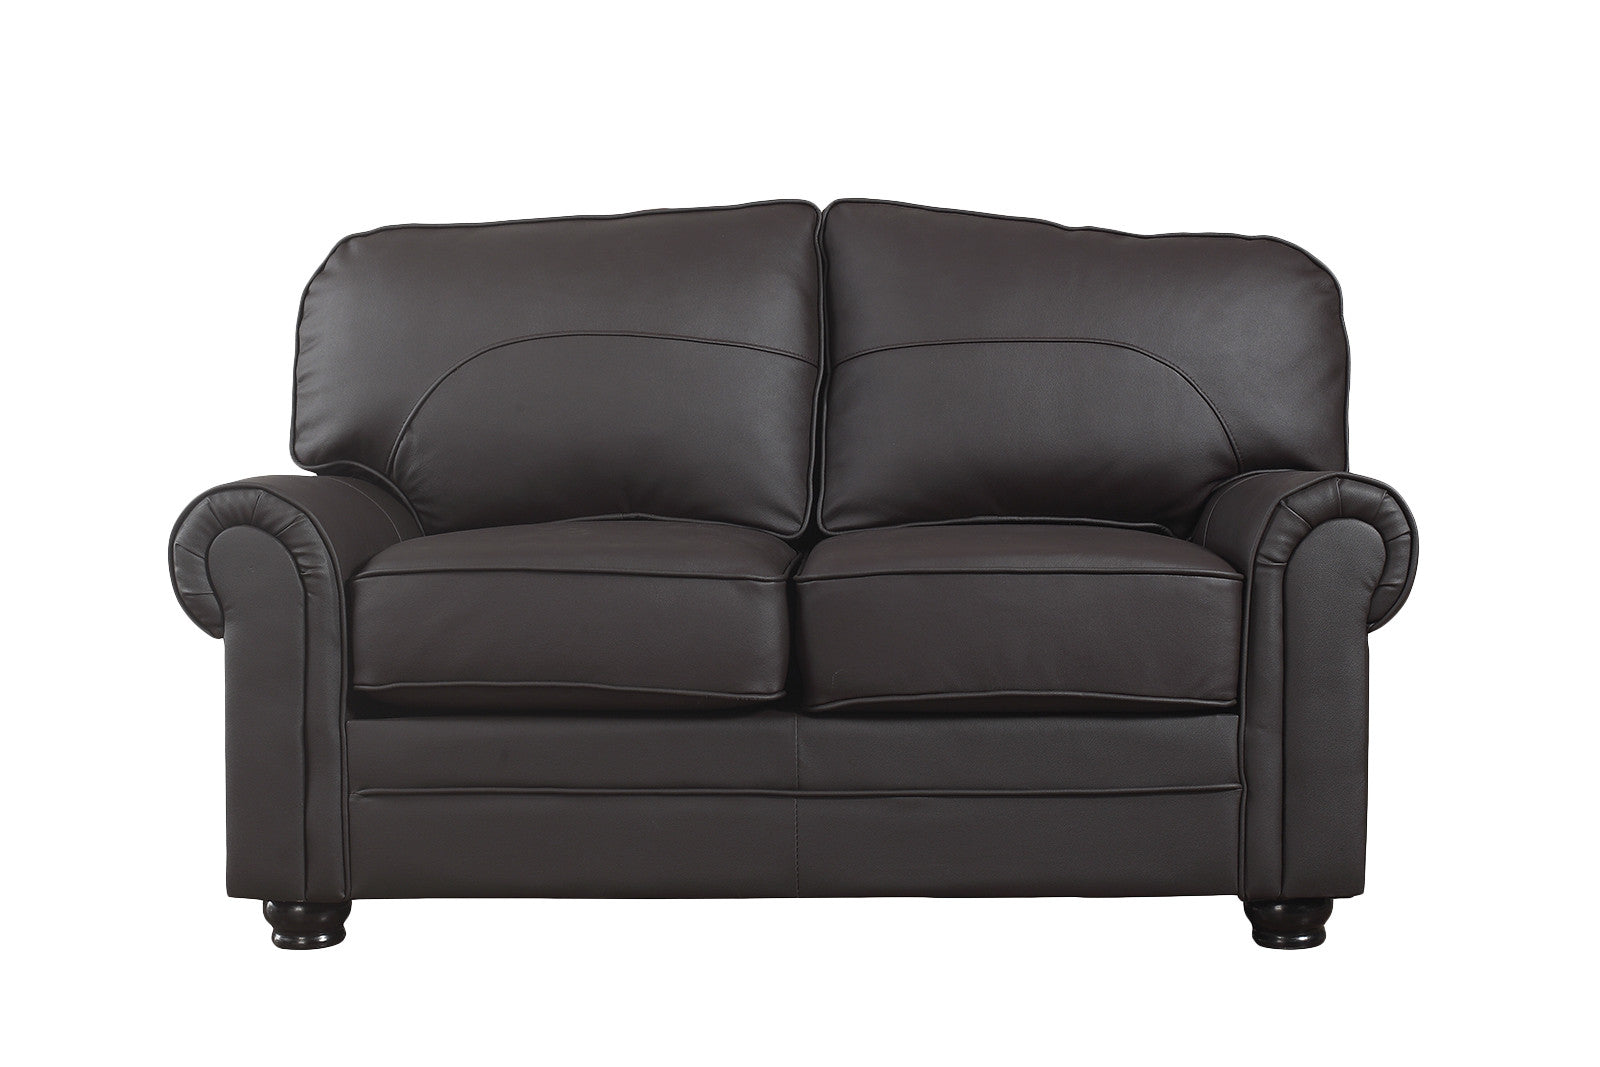 Plush Leather Loveseat Image